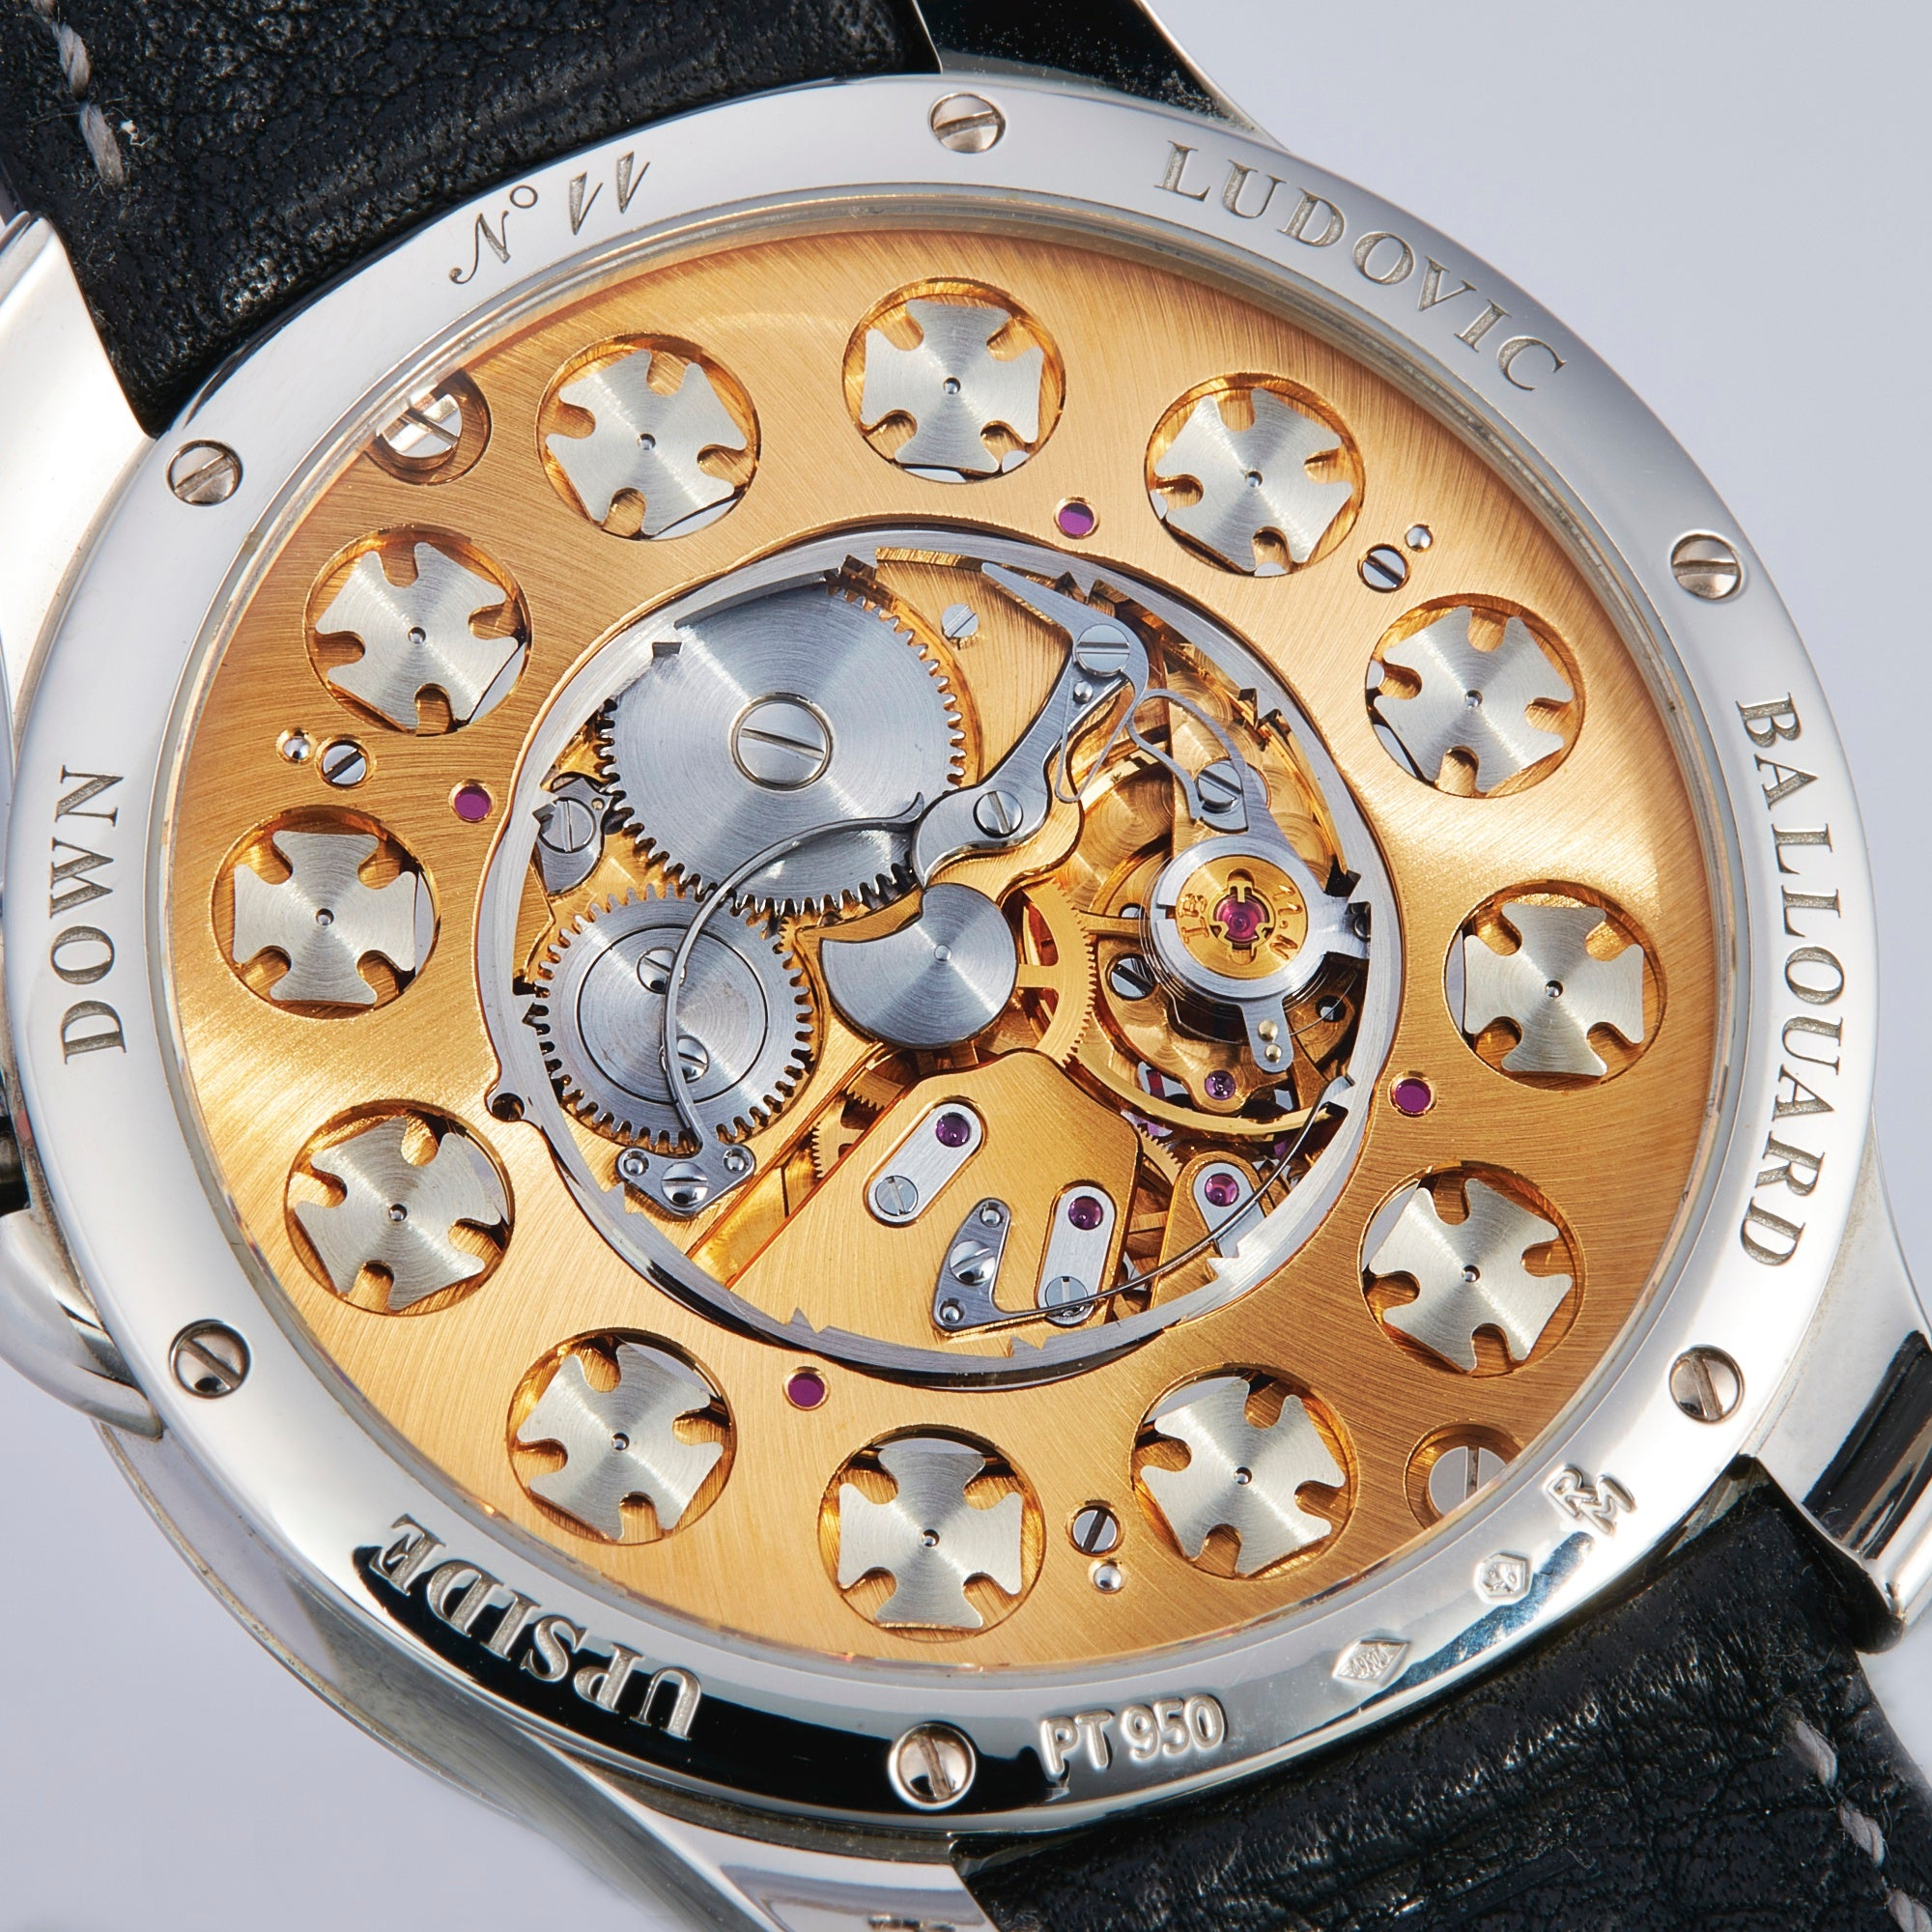 Early Upside Down by Ludovic Ballouard in Watchmakers Look Back on the First Watch They Made for A Collected Man London